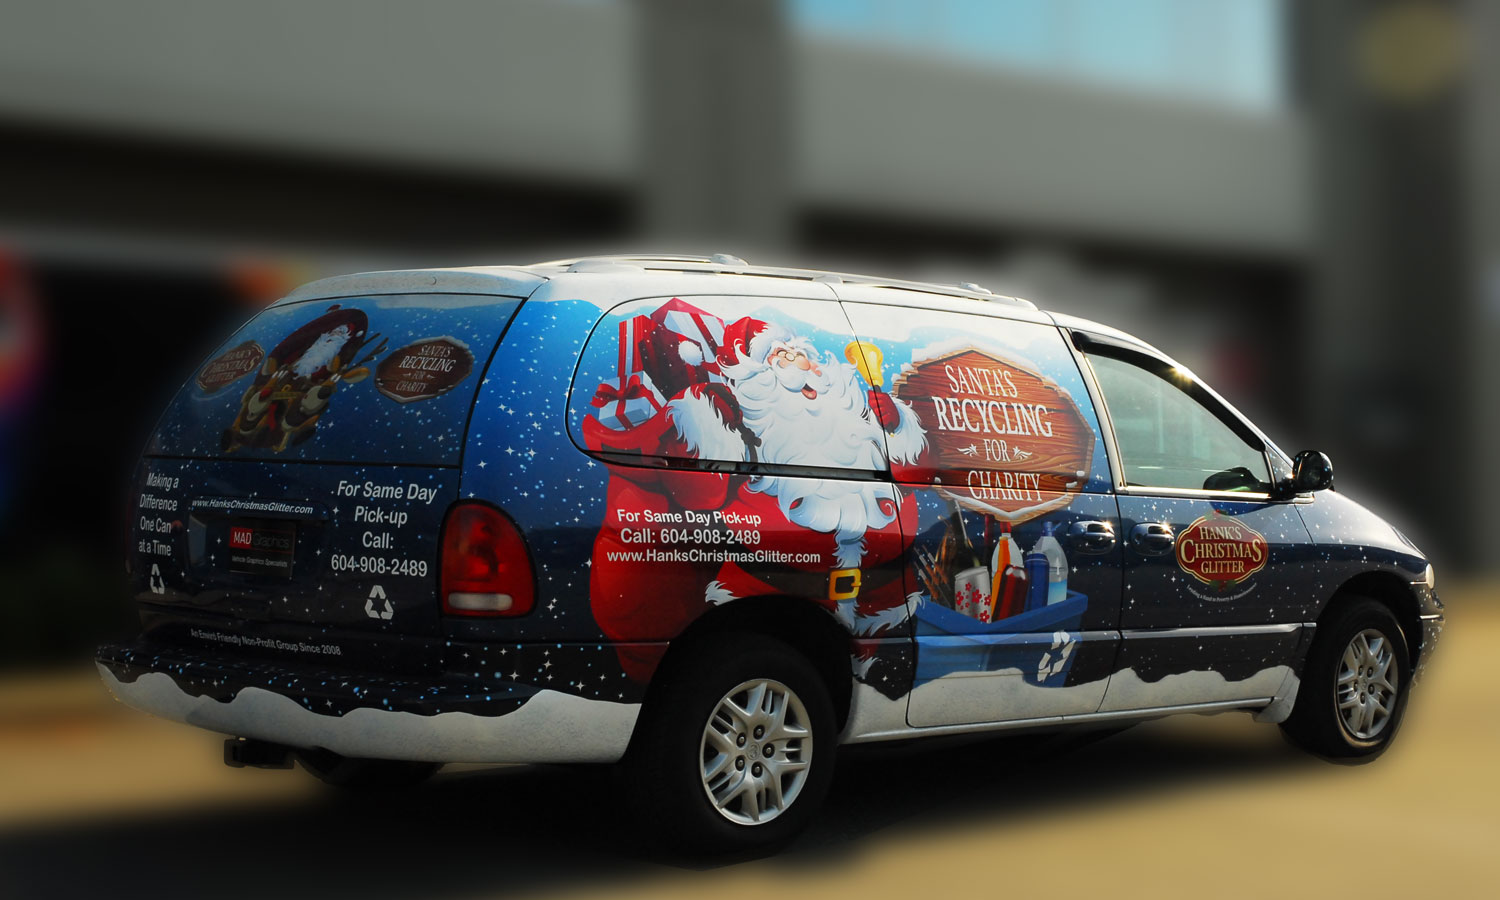 3M Full Van Wrap - Hanks Christmas Glitter